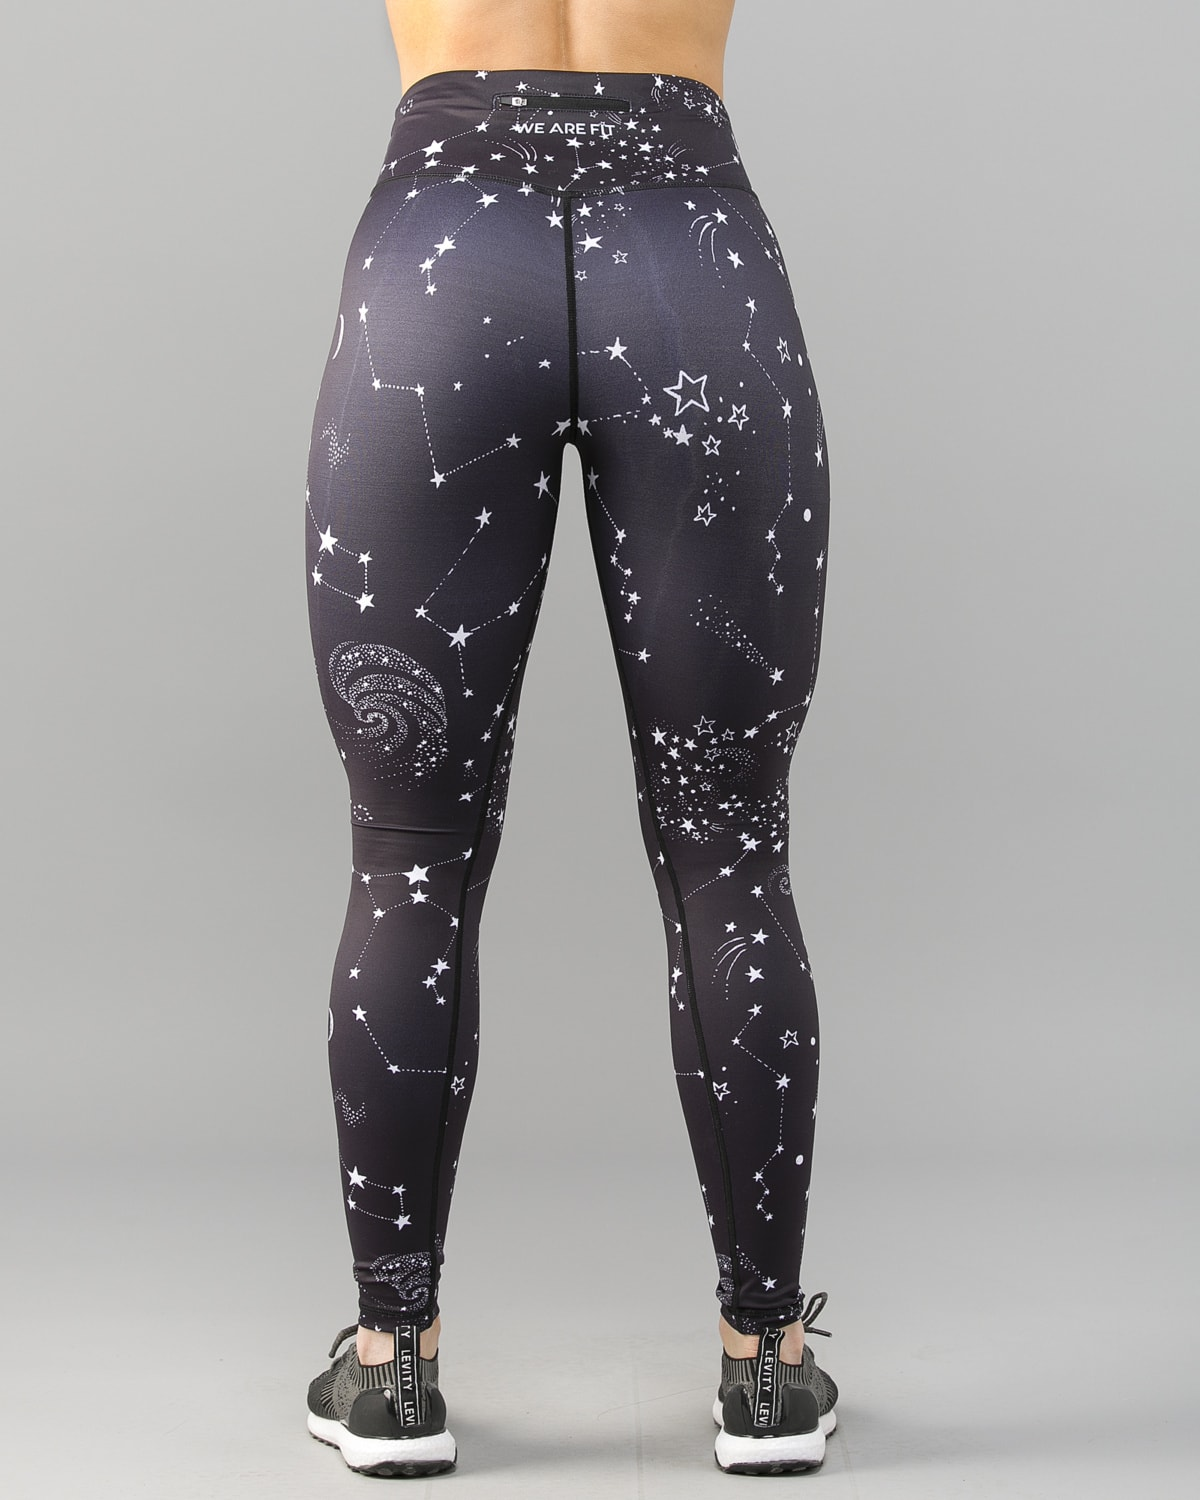 We-Are-Fit-Luna-Tights2